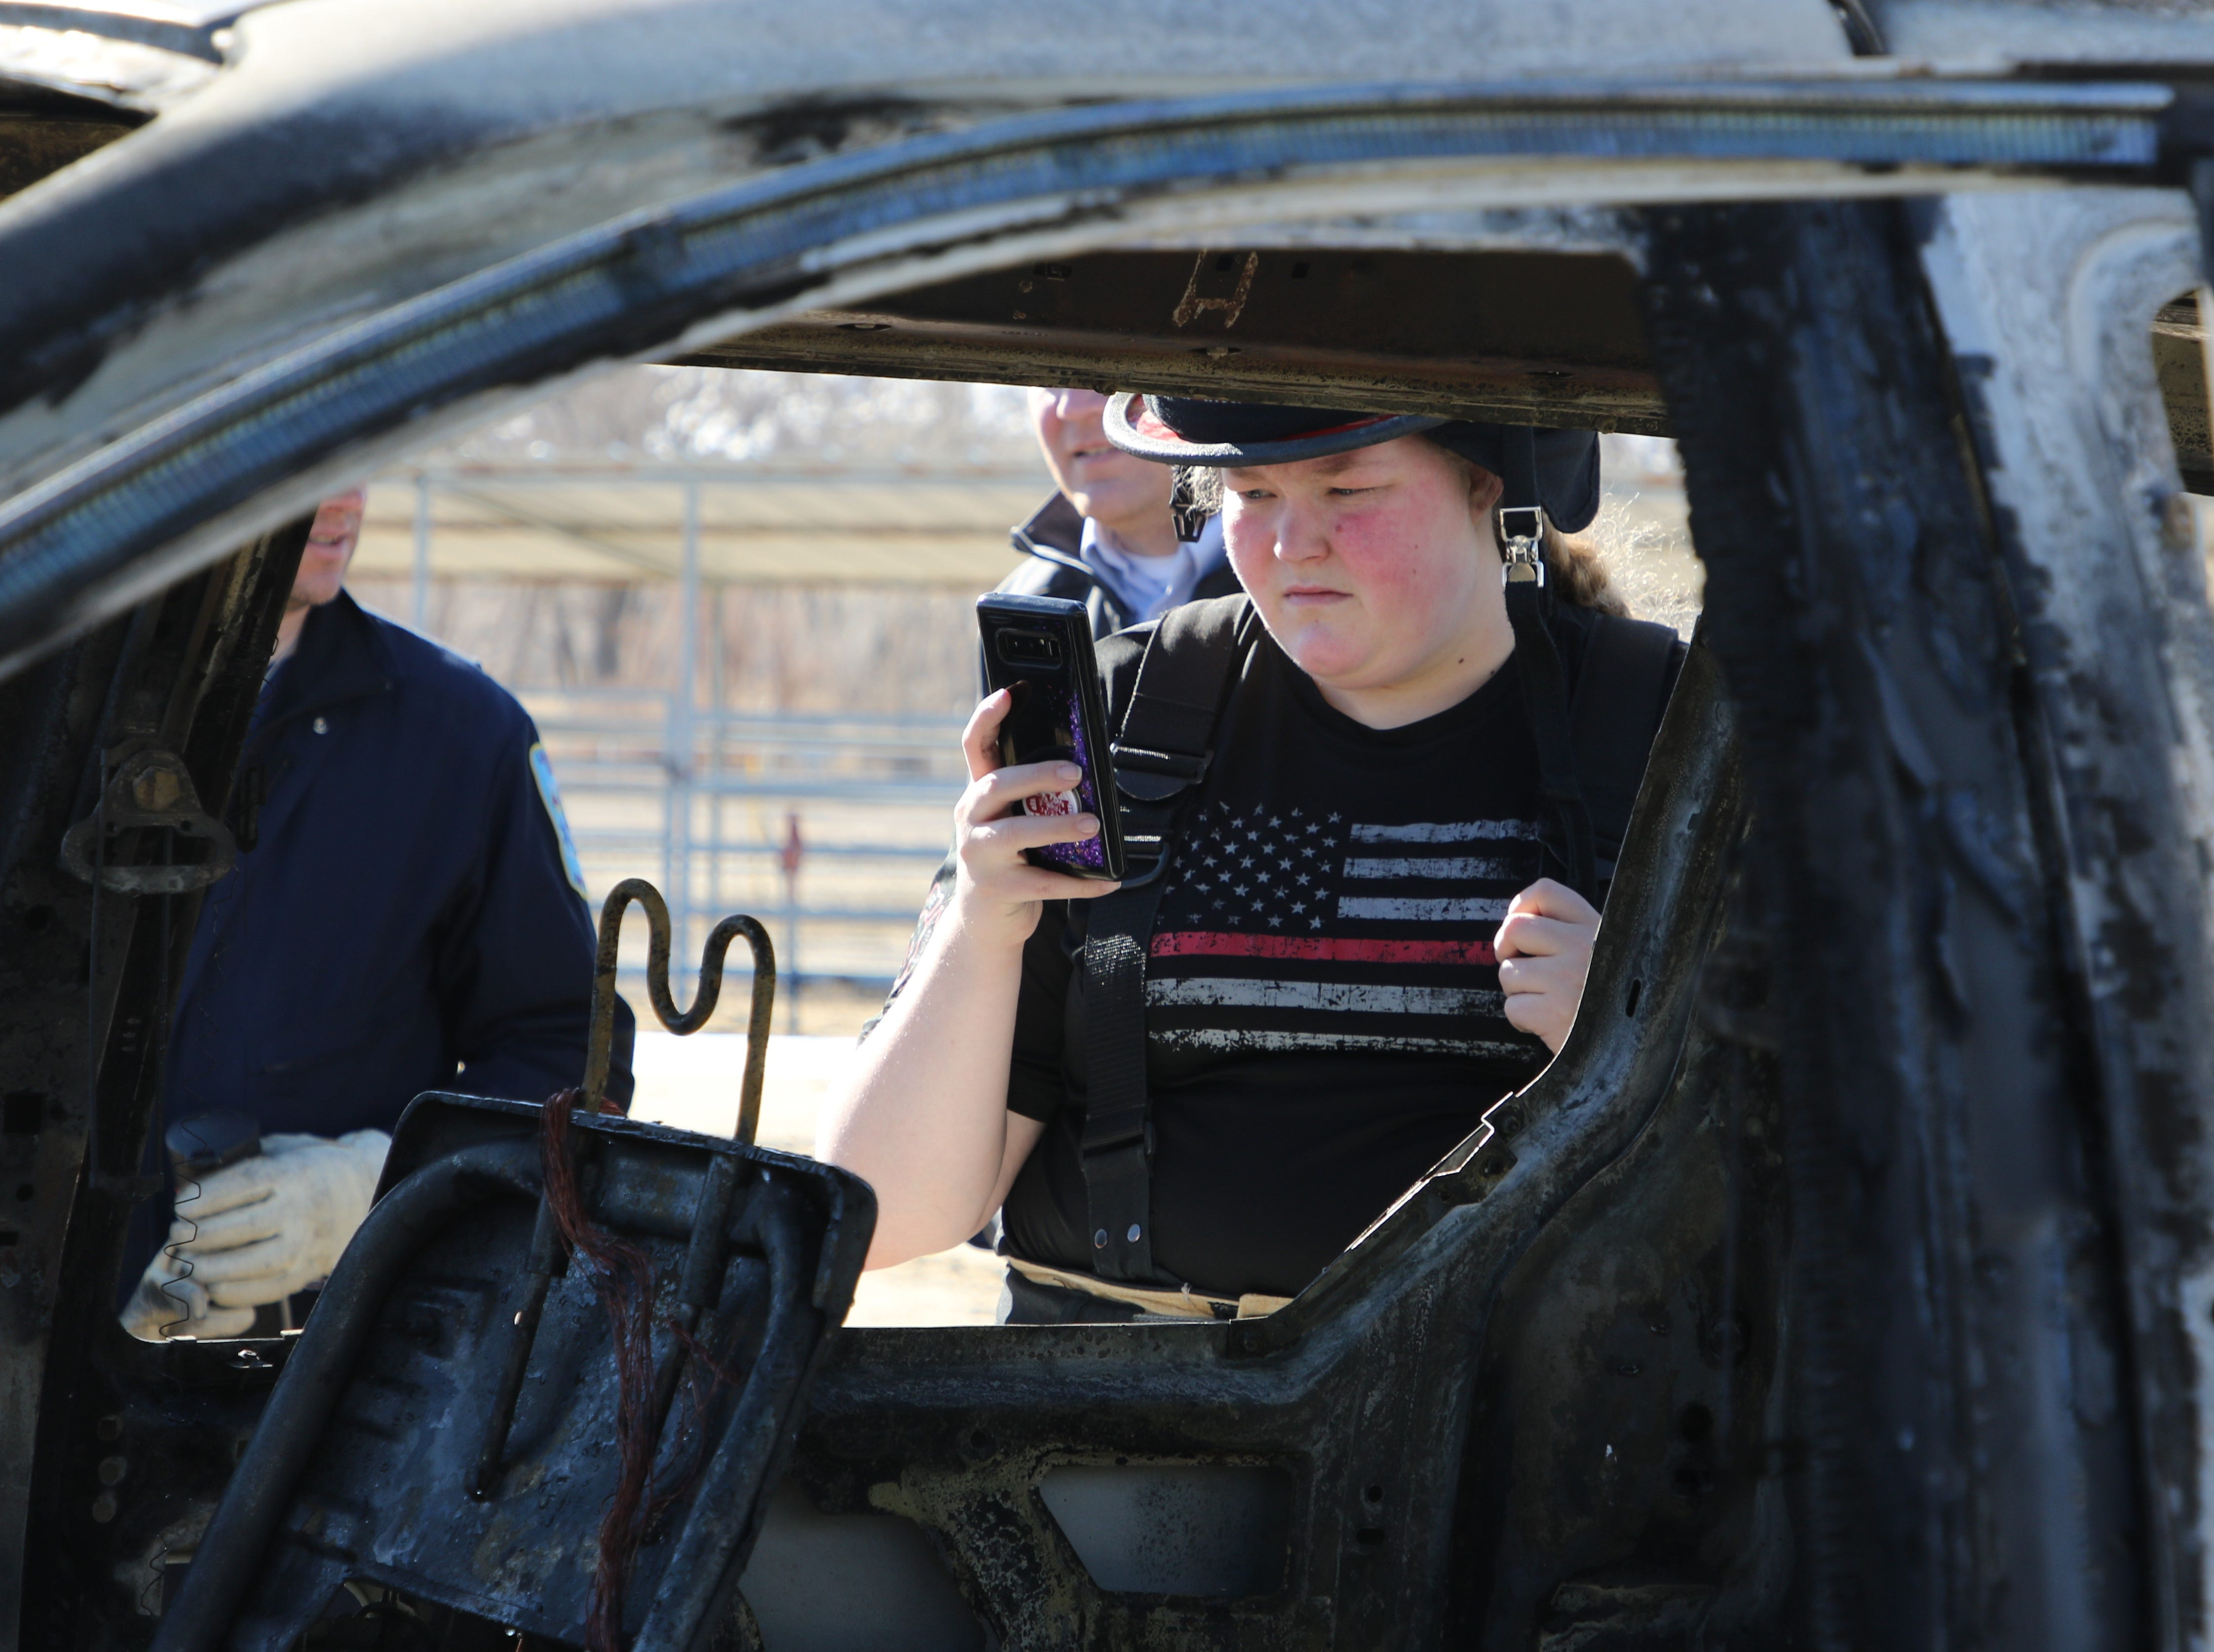 San Juan County Fire Department volunteer firefighter Caitlyn Vecellio records information during a training session at McGee Park on Wednesday.